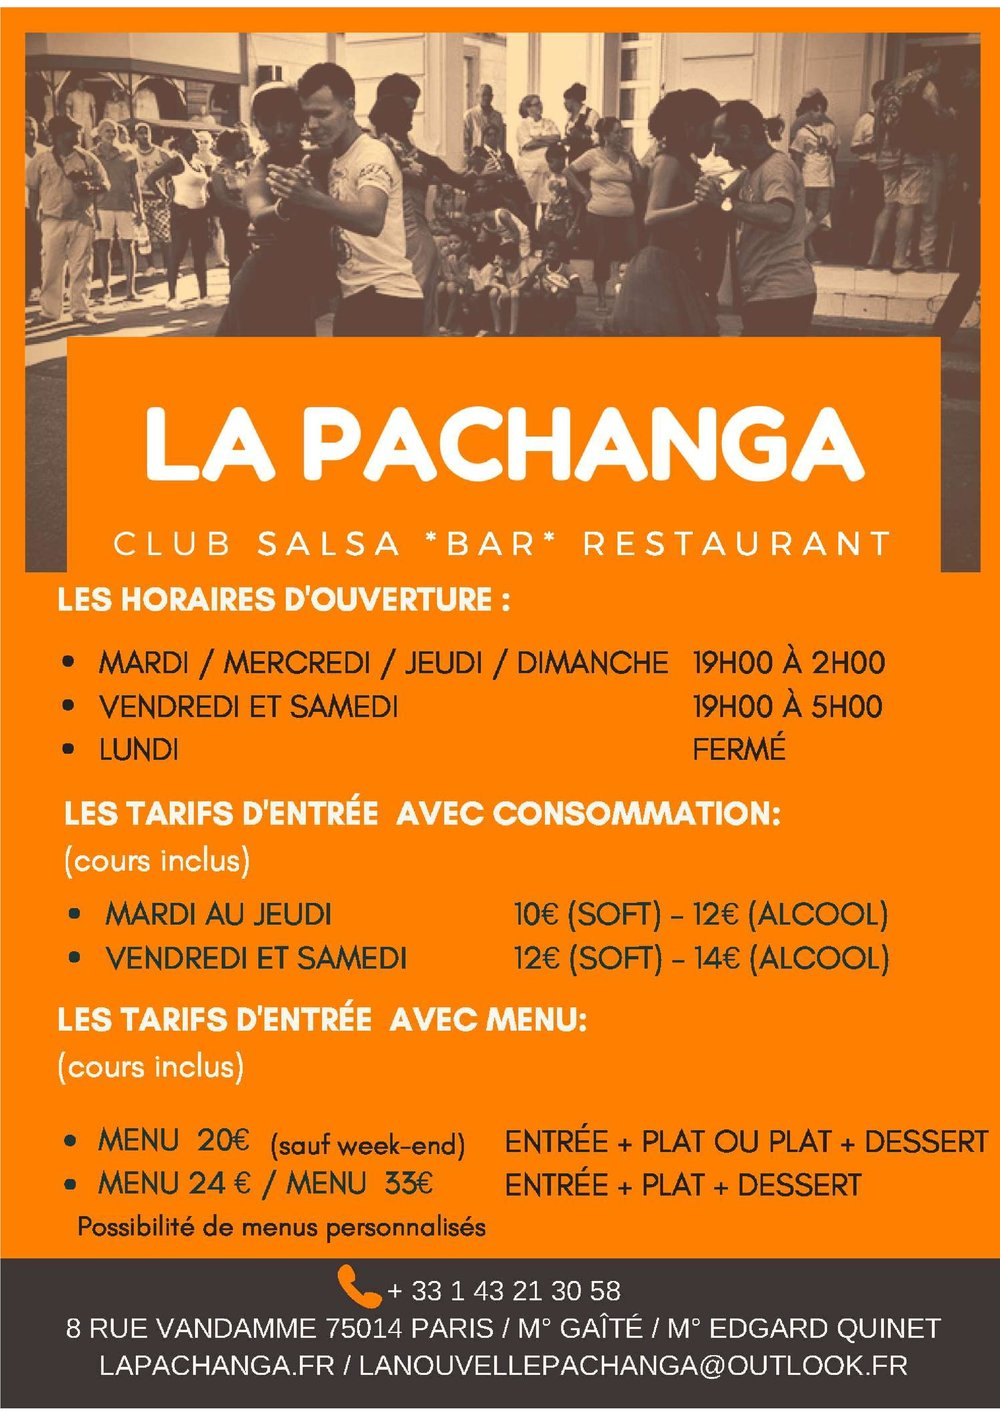 La pachanga orange-page-001.jpg